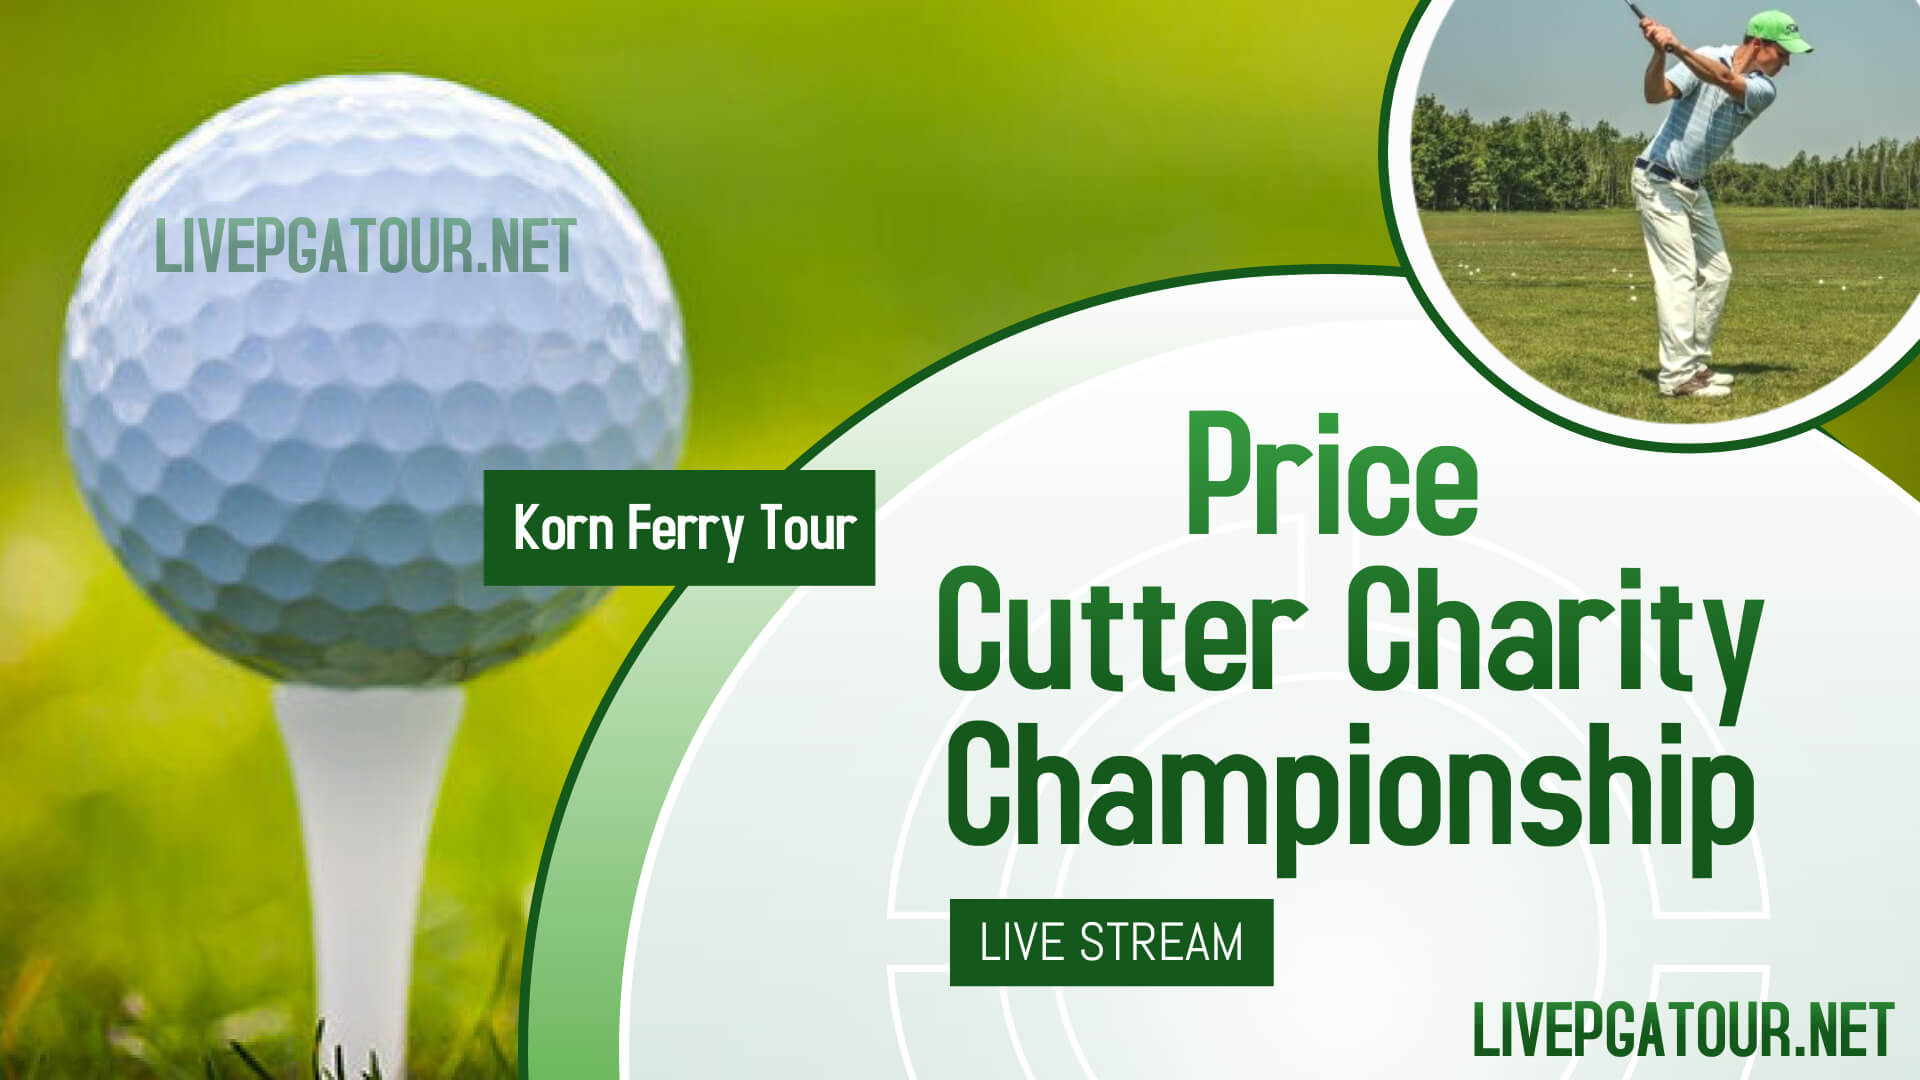 Price Cutter Charity Championship Live Stream 2021: Korn Ferry Day 4